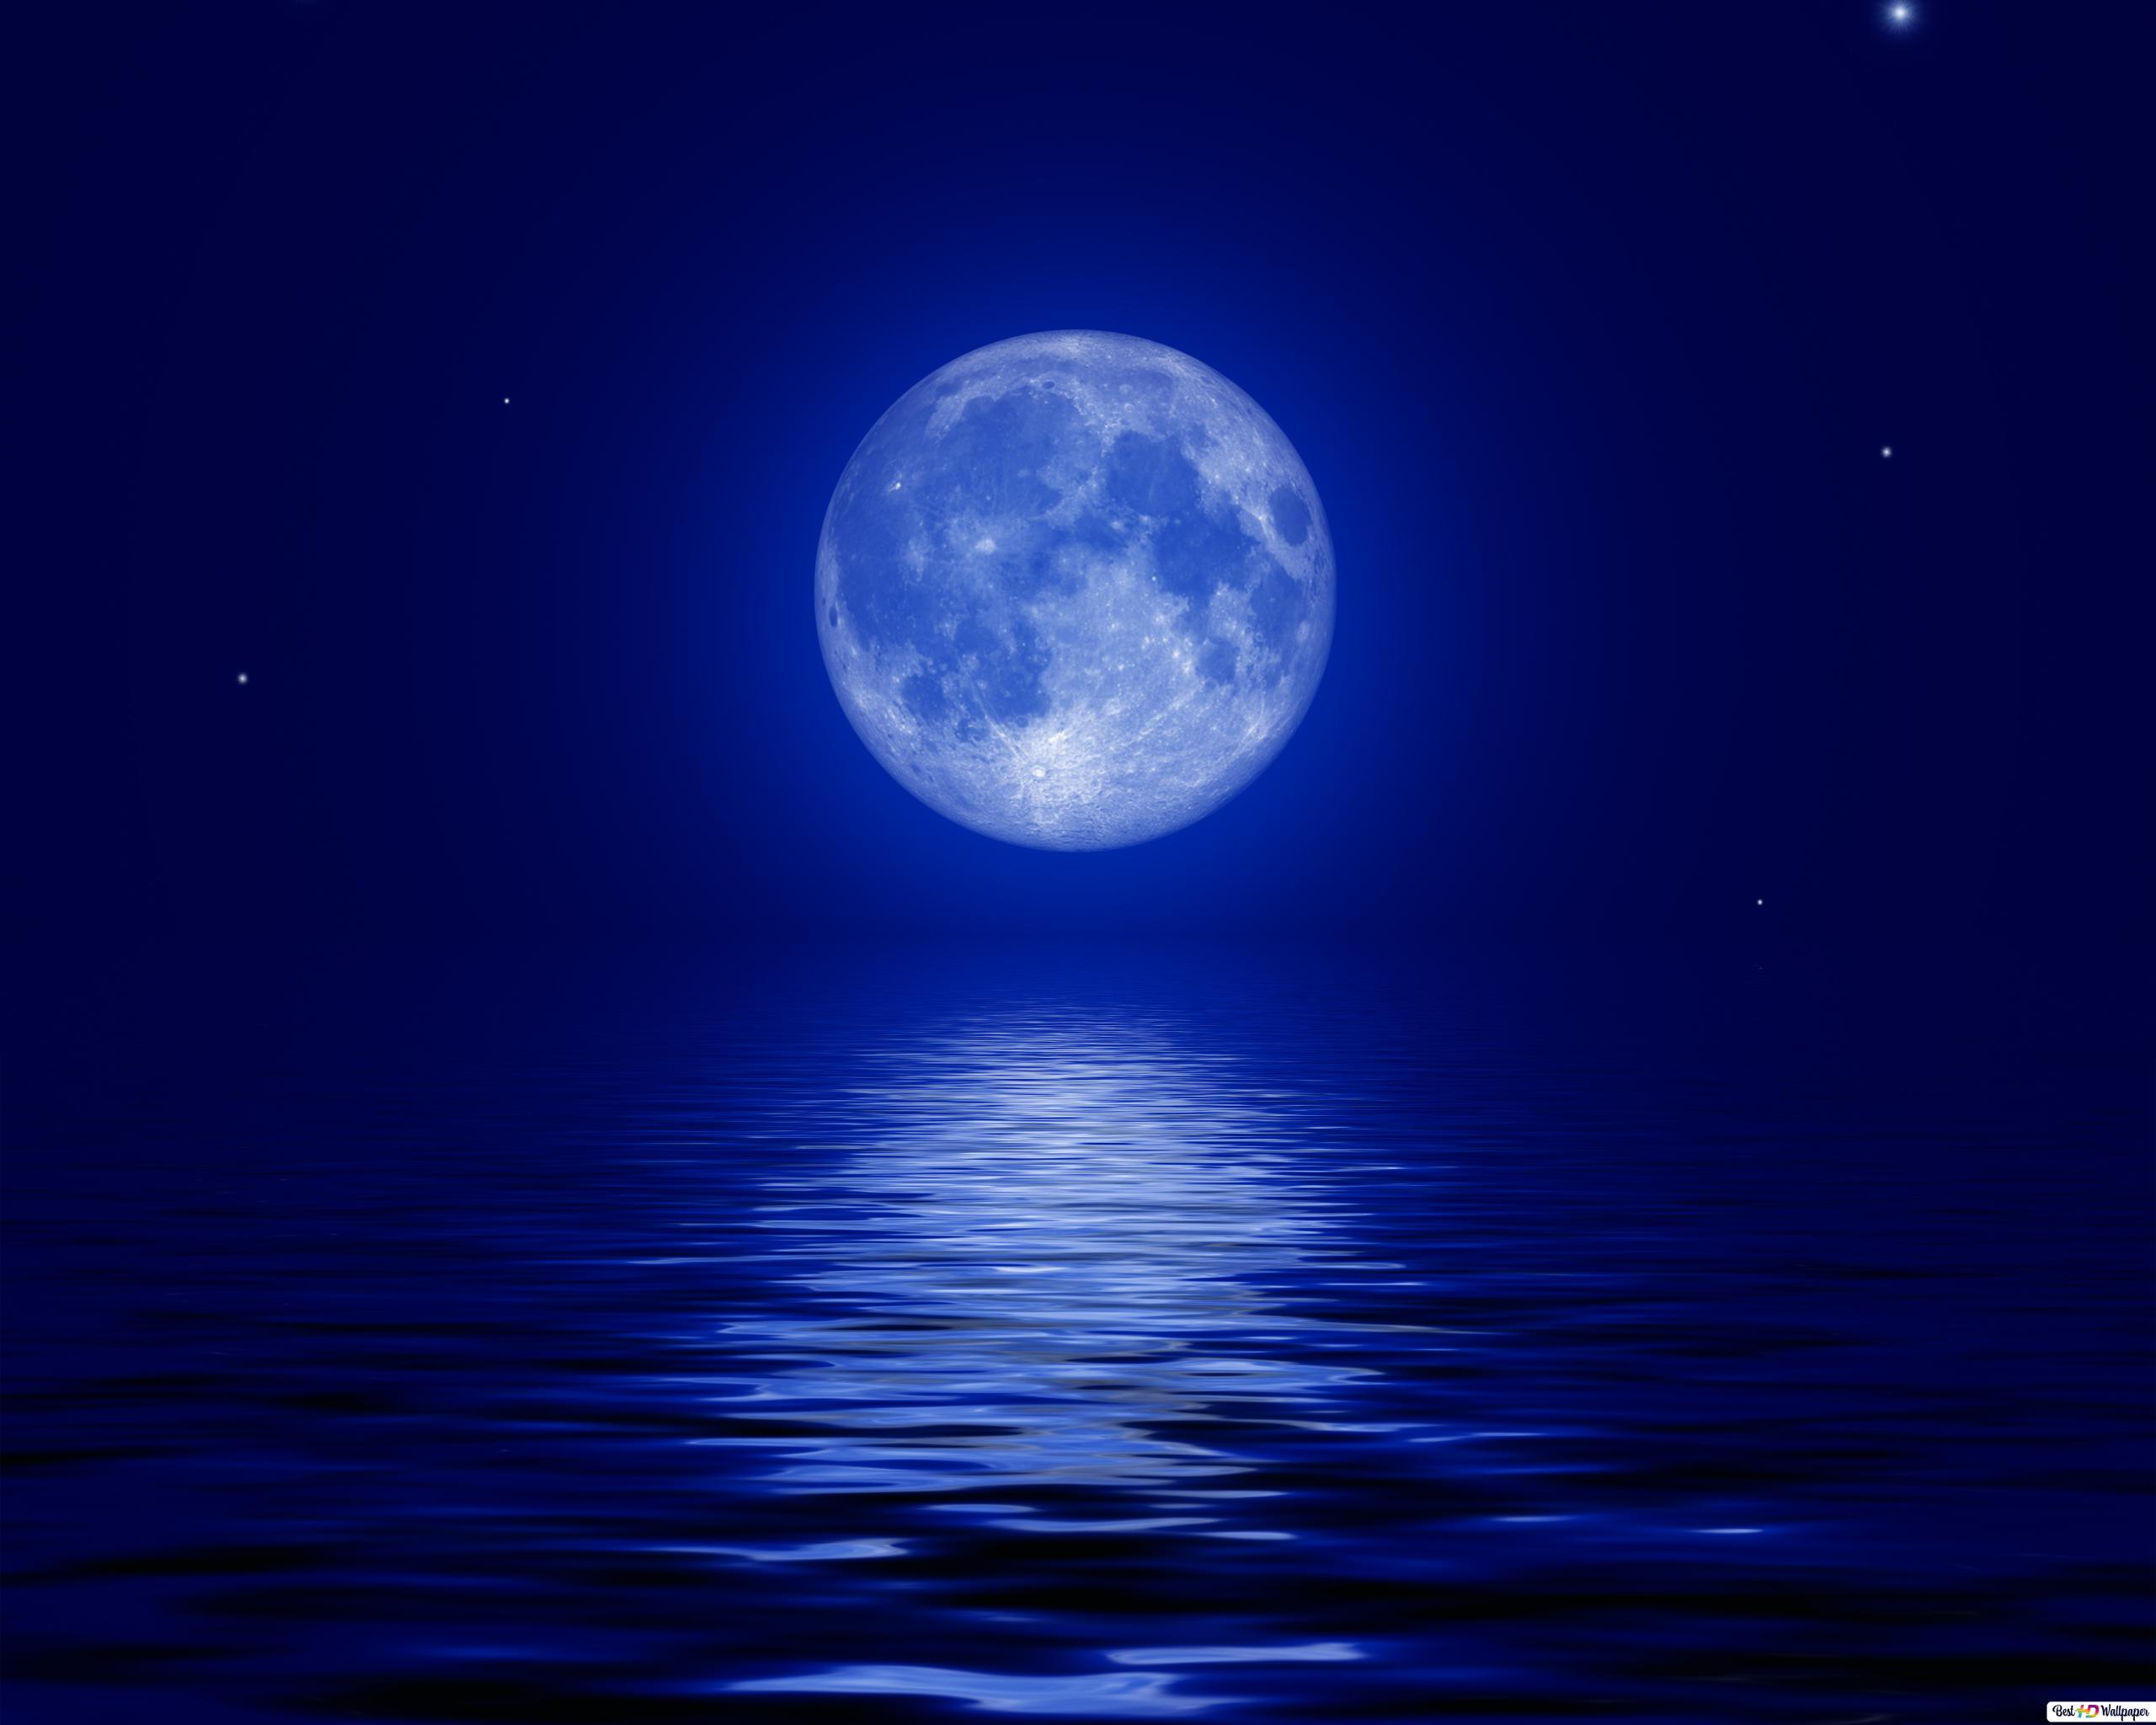 Full Moon Over The Sea Hd Wallpaper Download